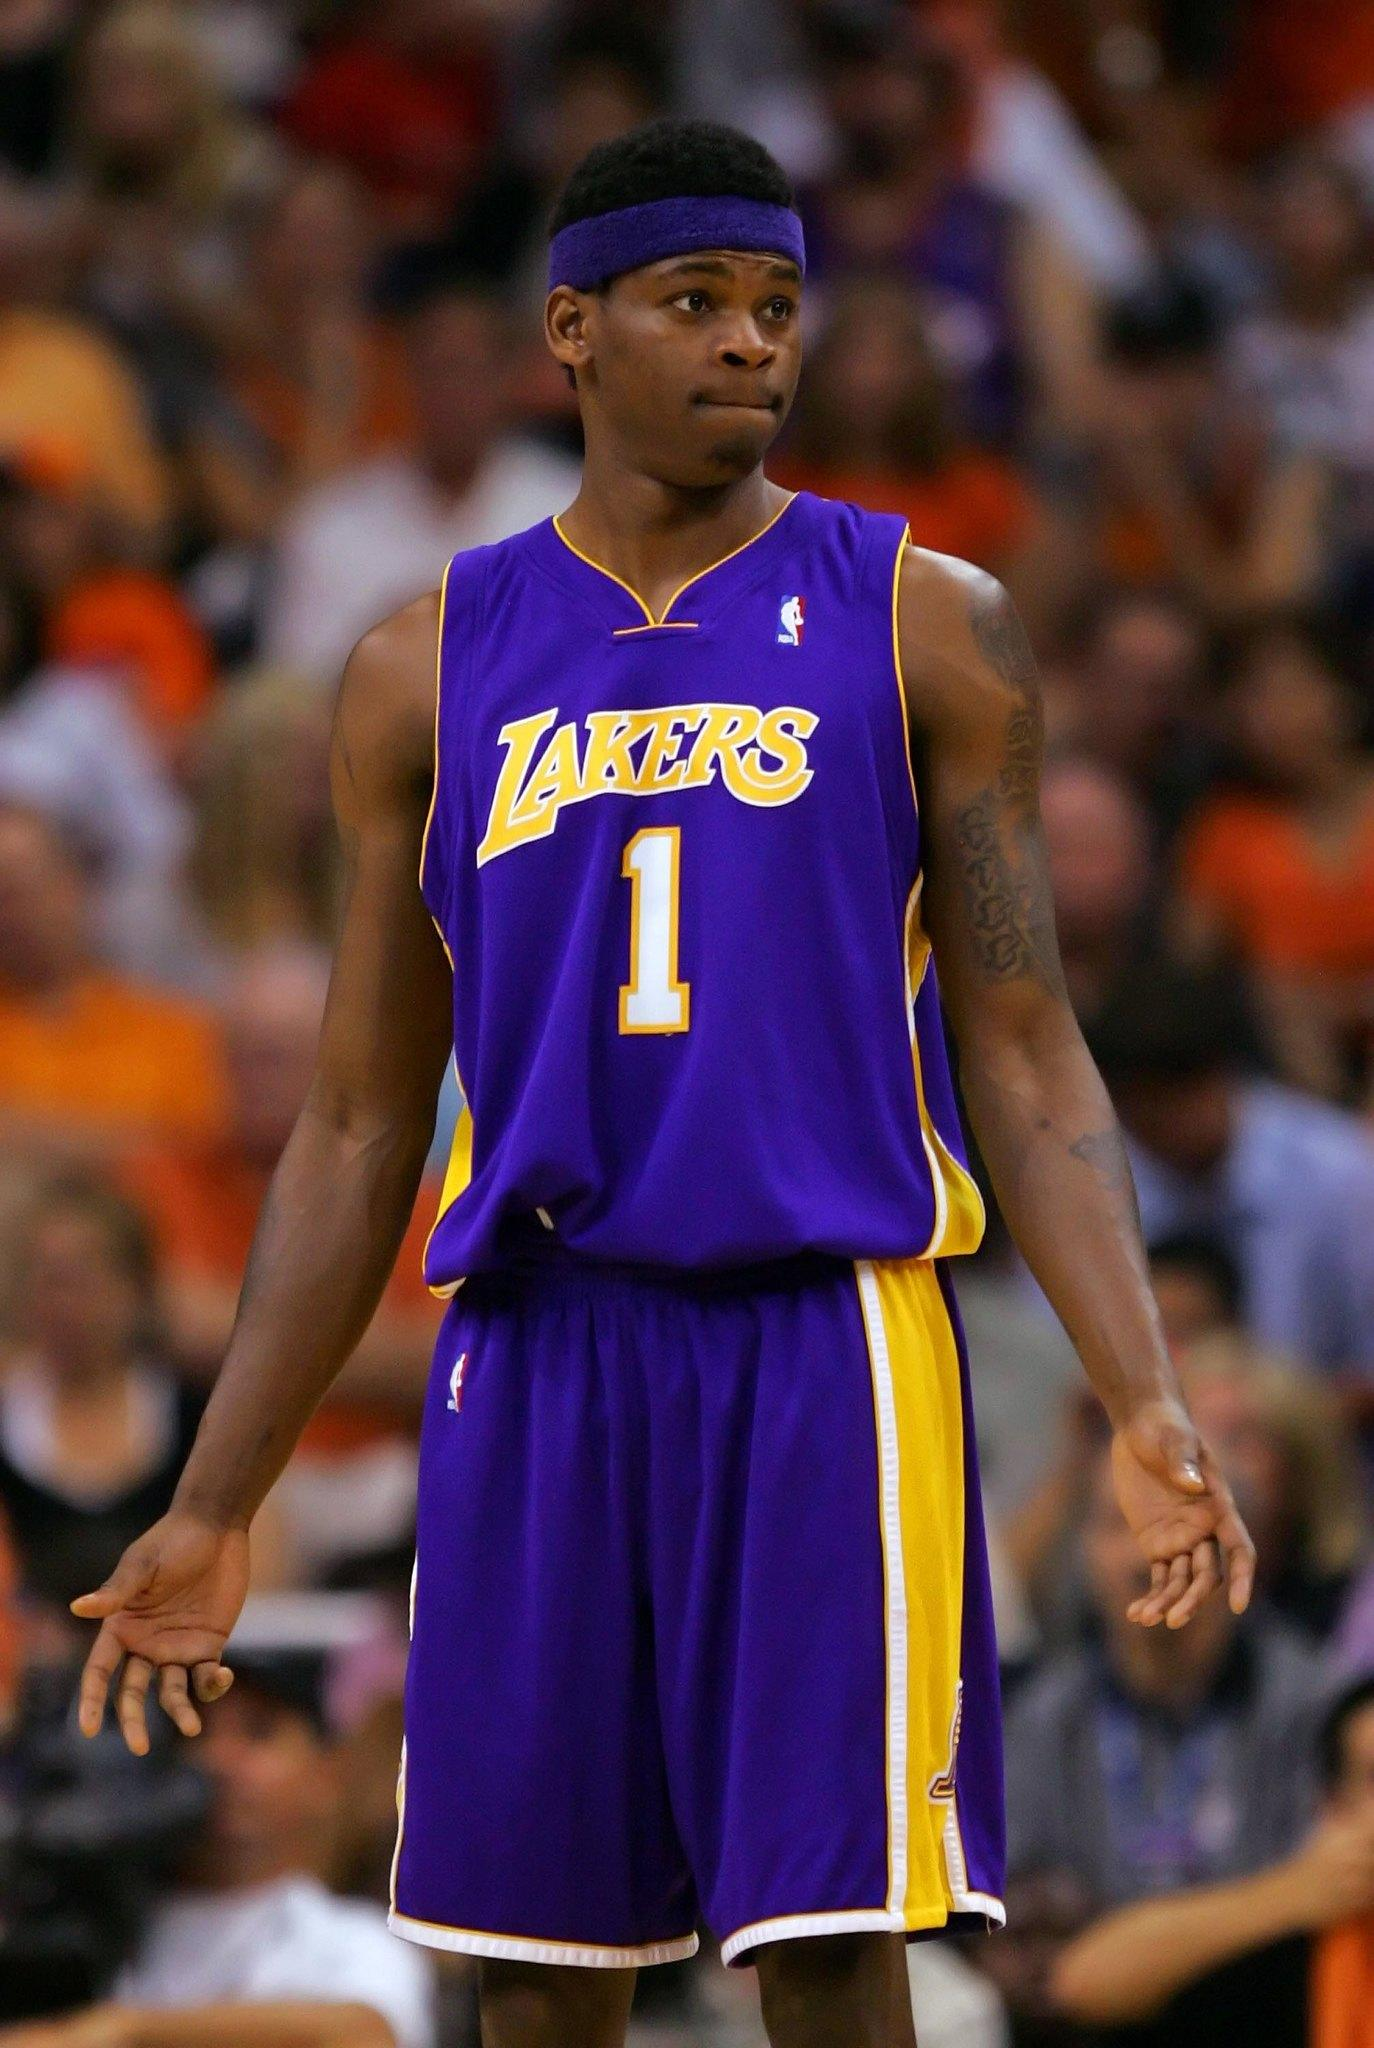 Former Laker Smush Parker plays against the Phoenix Suns in Game 5 of the Western Conference guarterfinals on May 2, 2007.